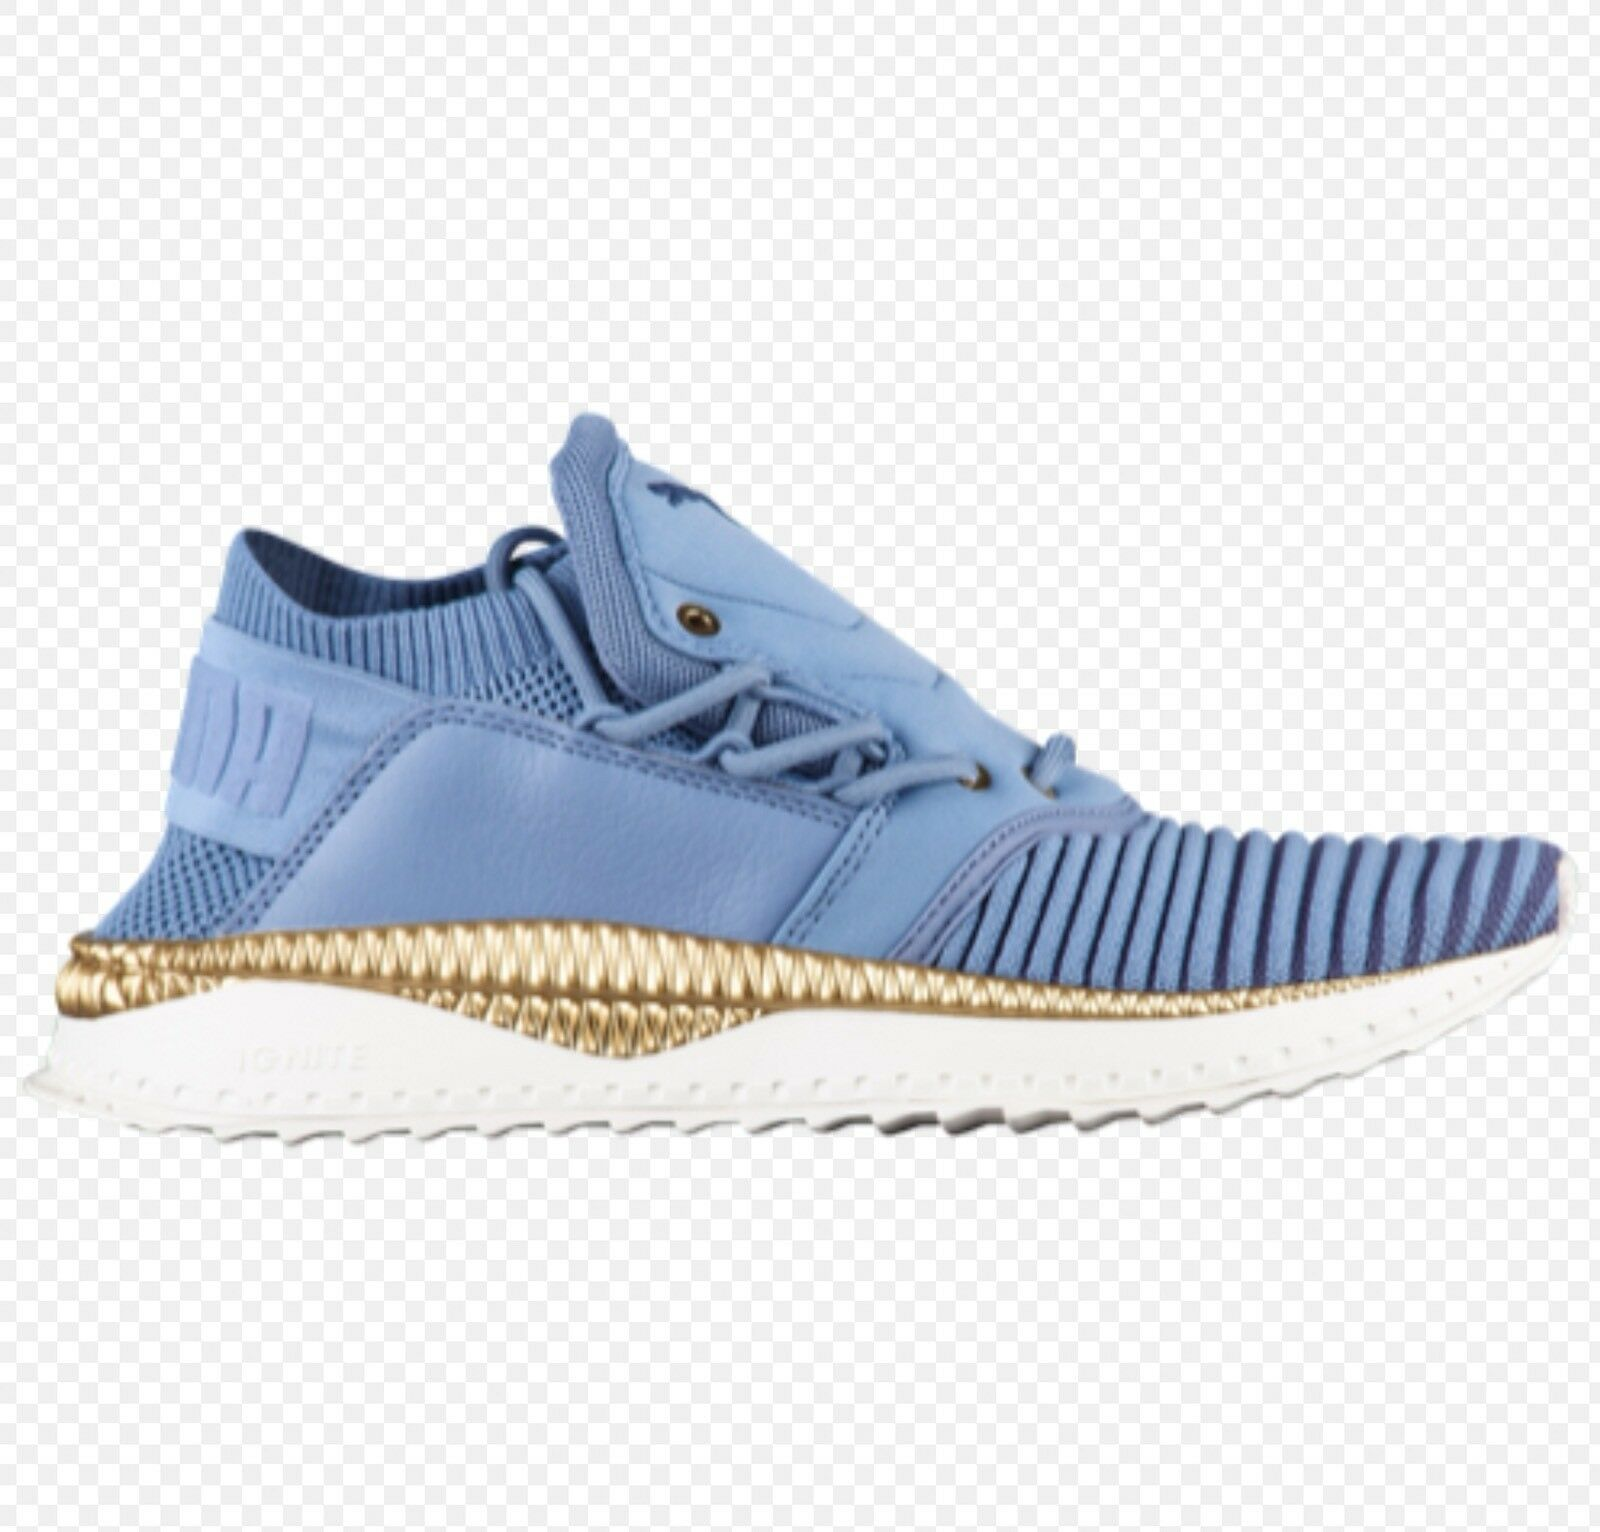 Puma Women Women's Tsugi Shinsei Blue Sneakers, Sport Athletic Walking Shoes 7 M